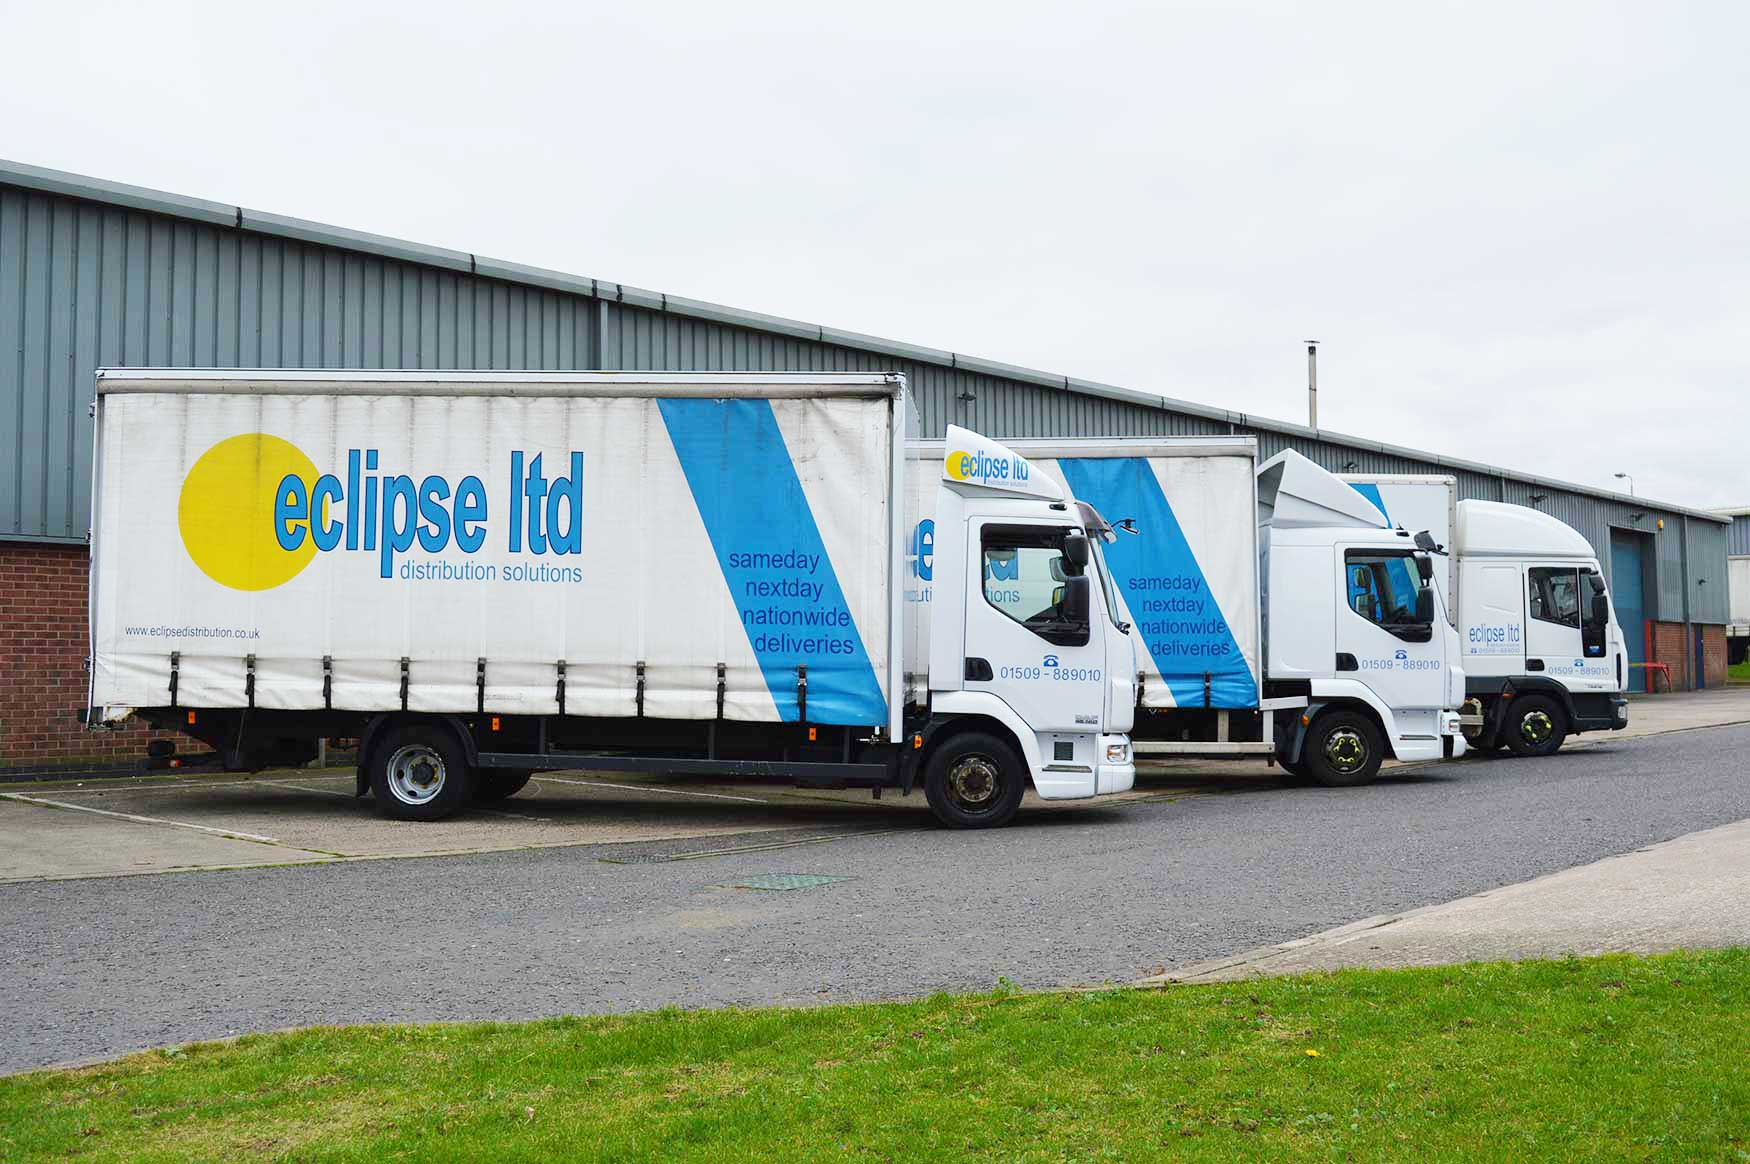 An image showing three Eclipse lorries parked outside.